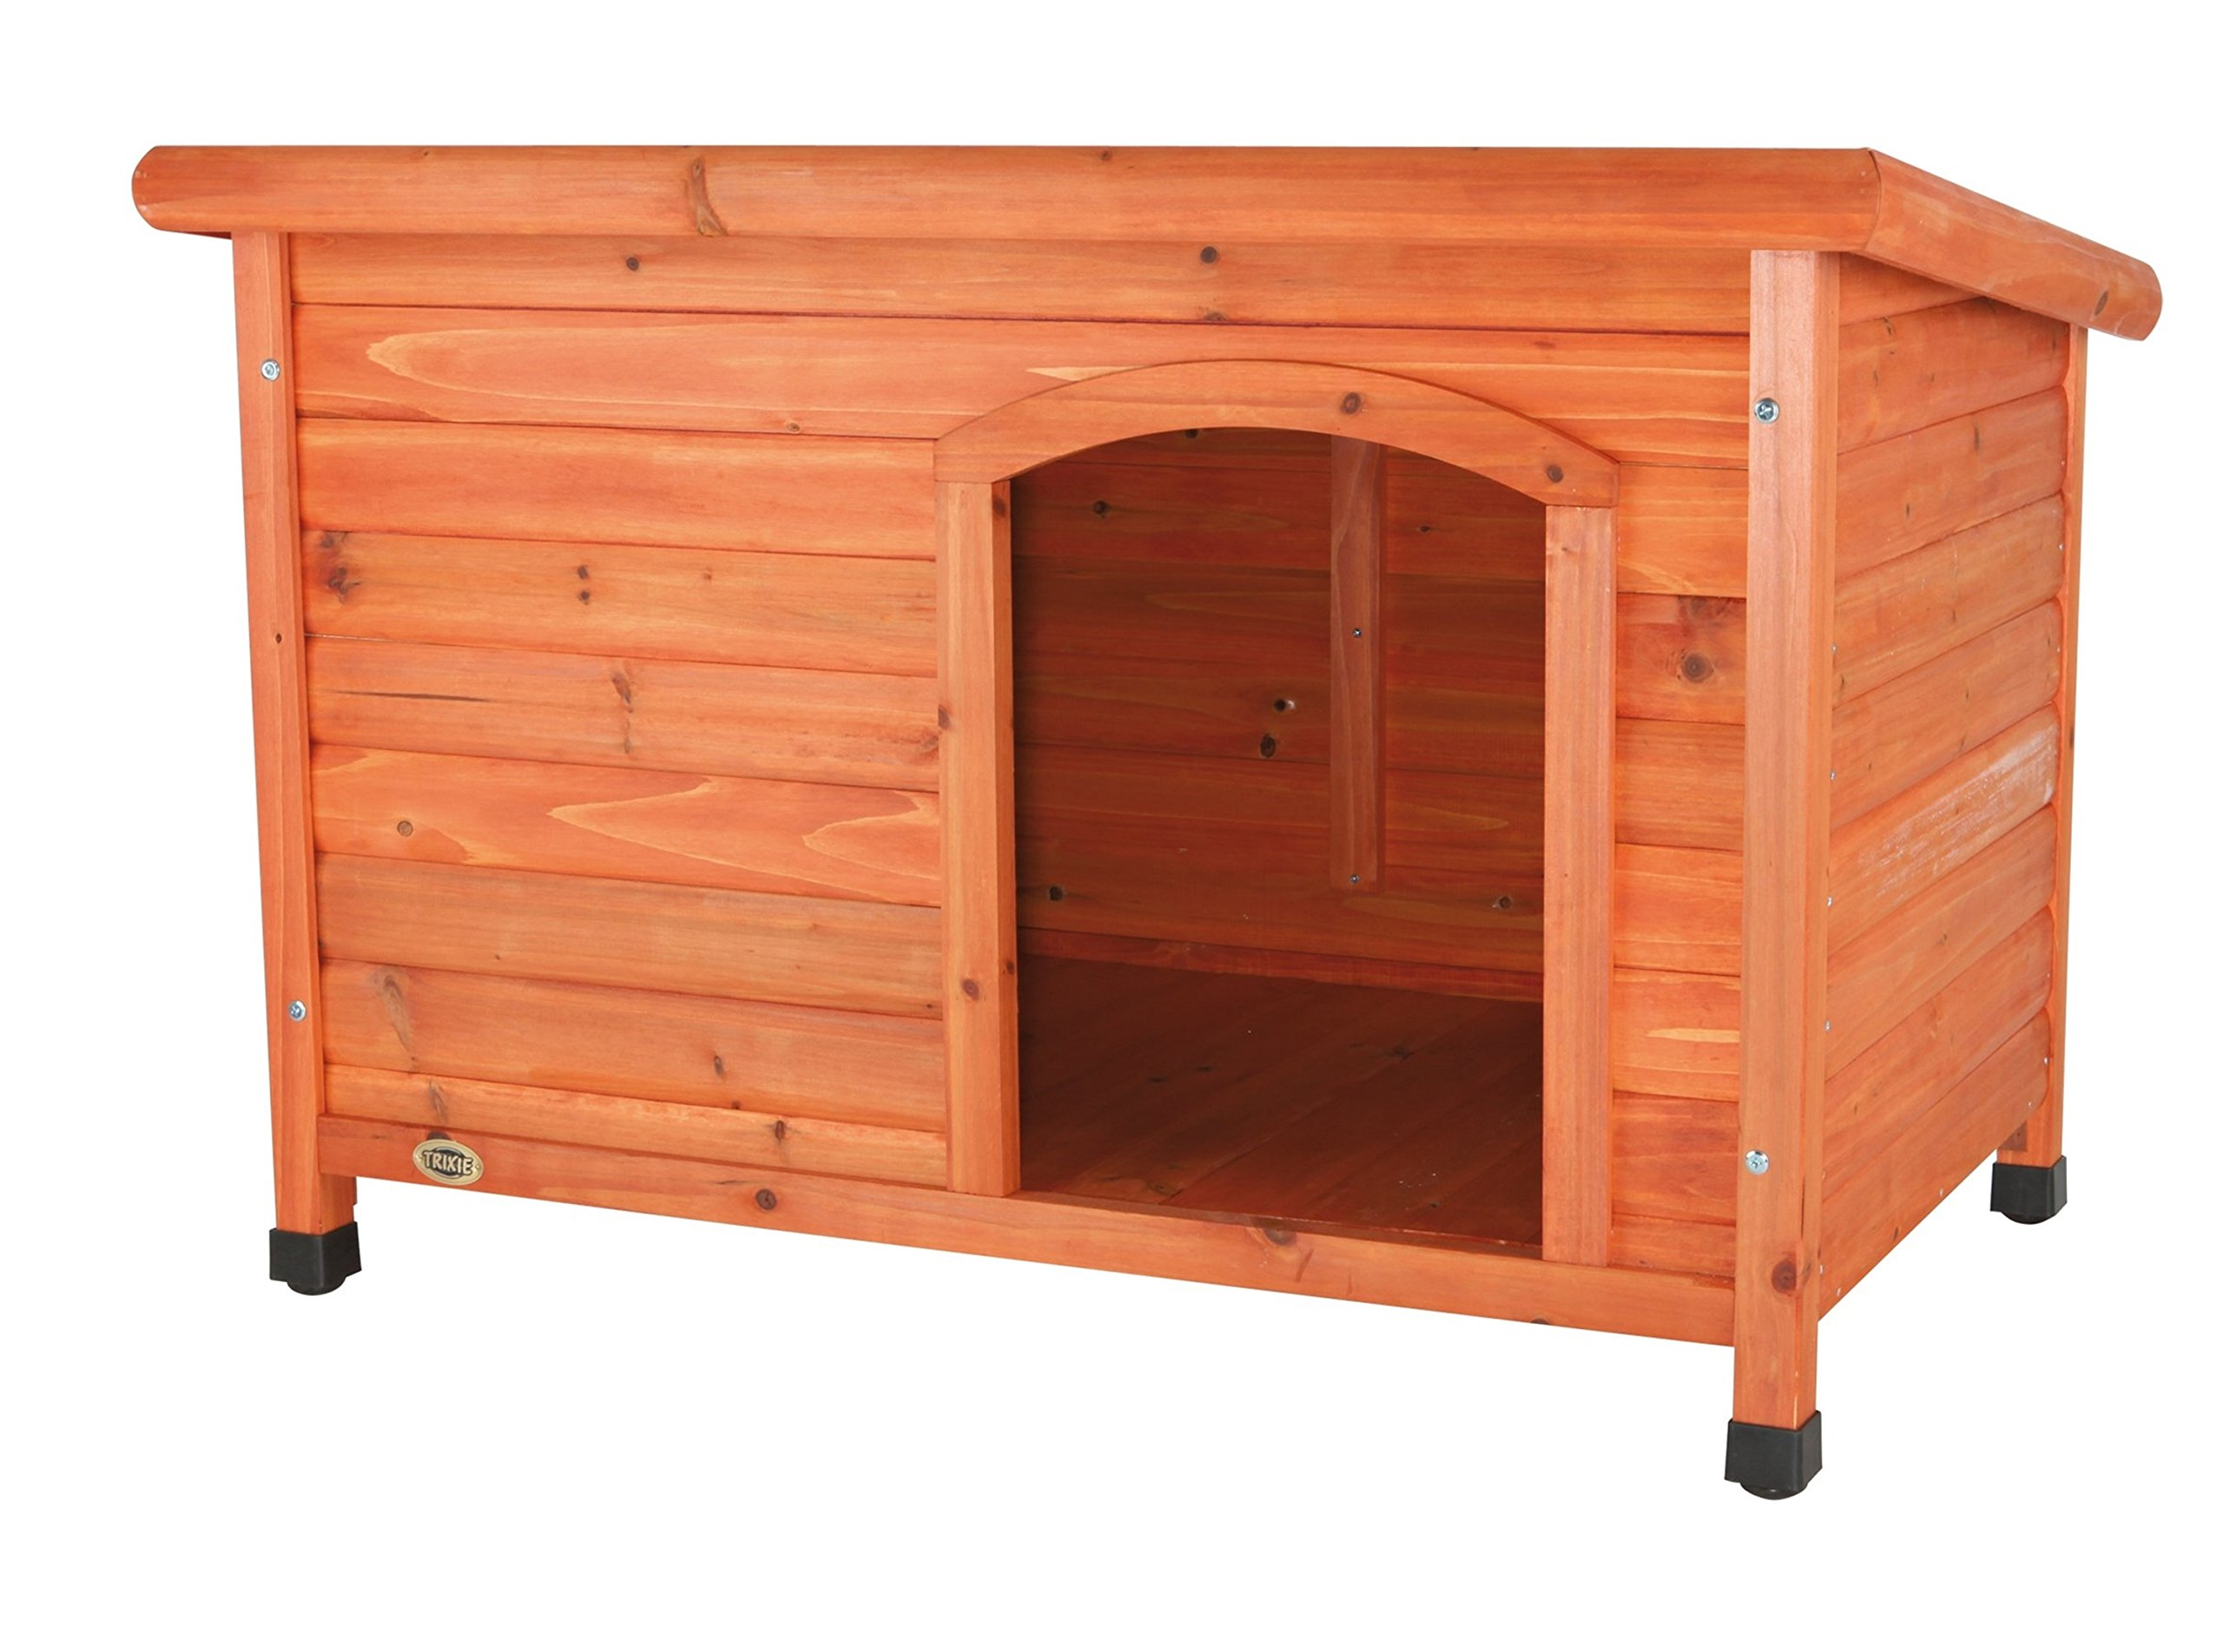 TRIXIE Pet Products Dog Club House, X-Large by Trixie